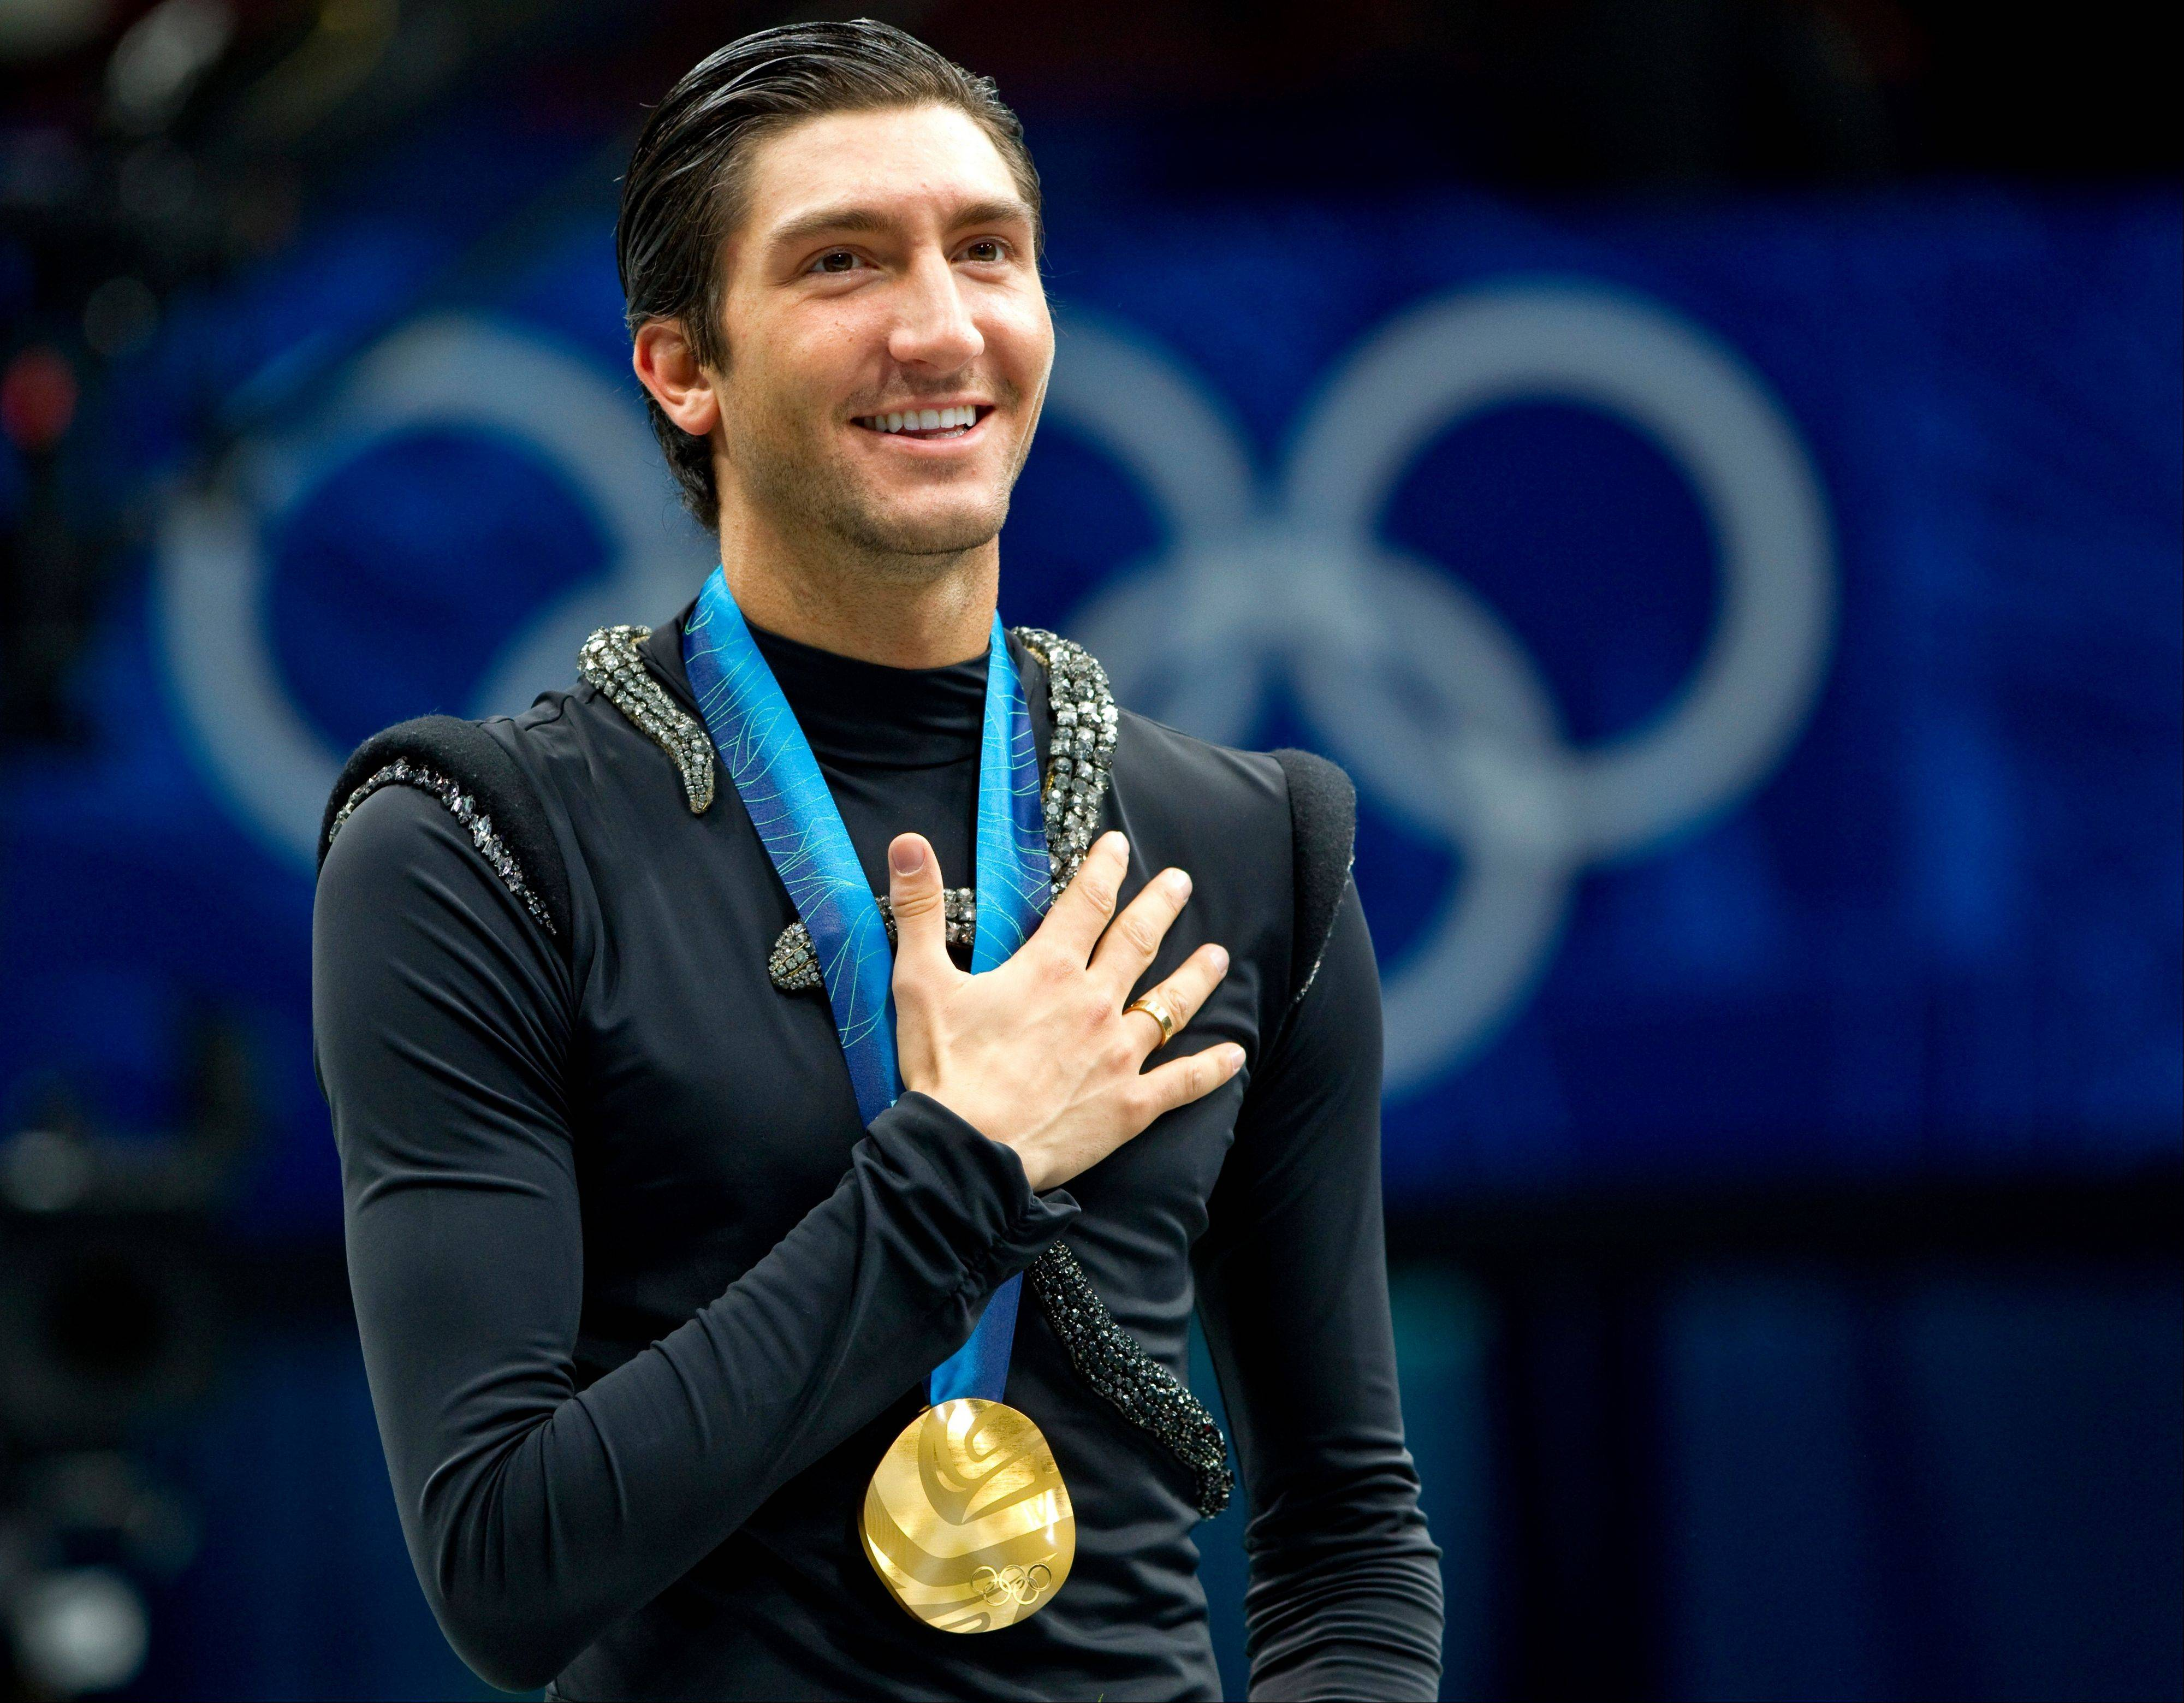 Lysacek in Sochi: Speed wins